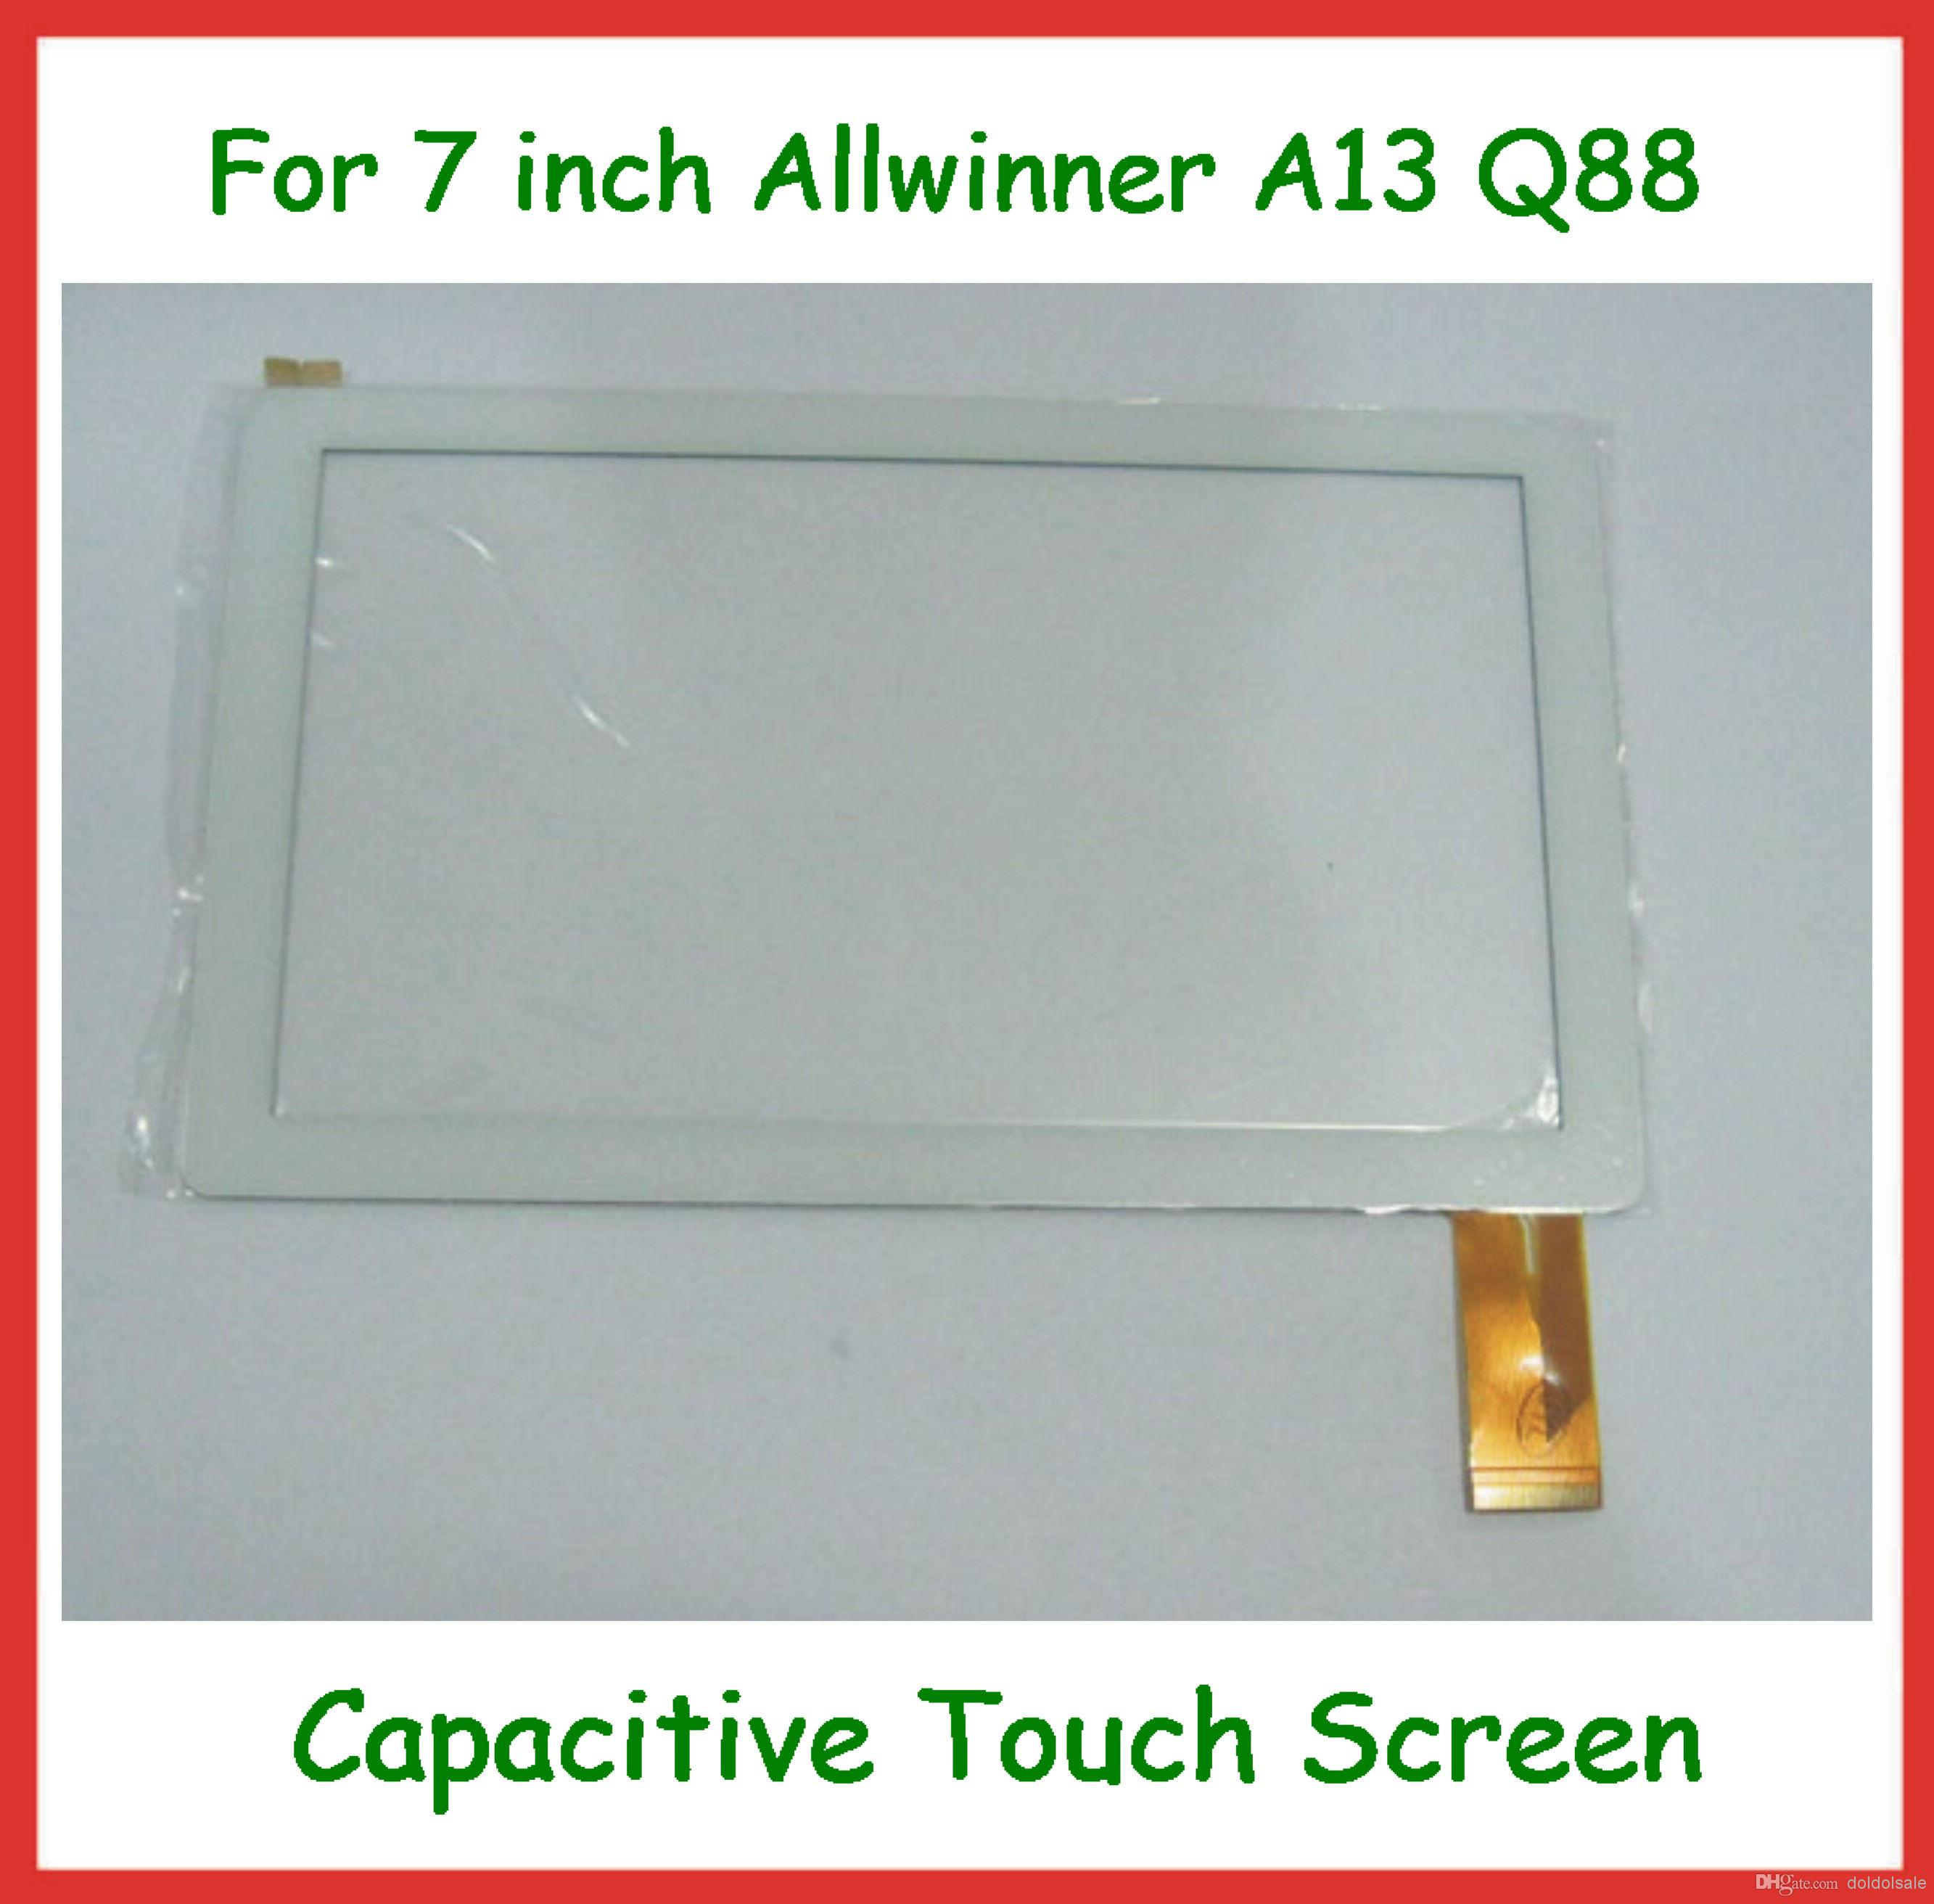 7 inch Capacitive Touch Screen with Glass Replacement Screen for 7 inch Allwinner A13 A23 Q88 Q8 Tablet PC Free Shipping